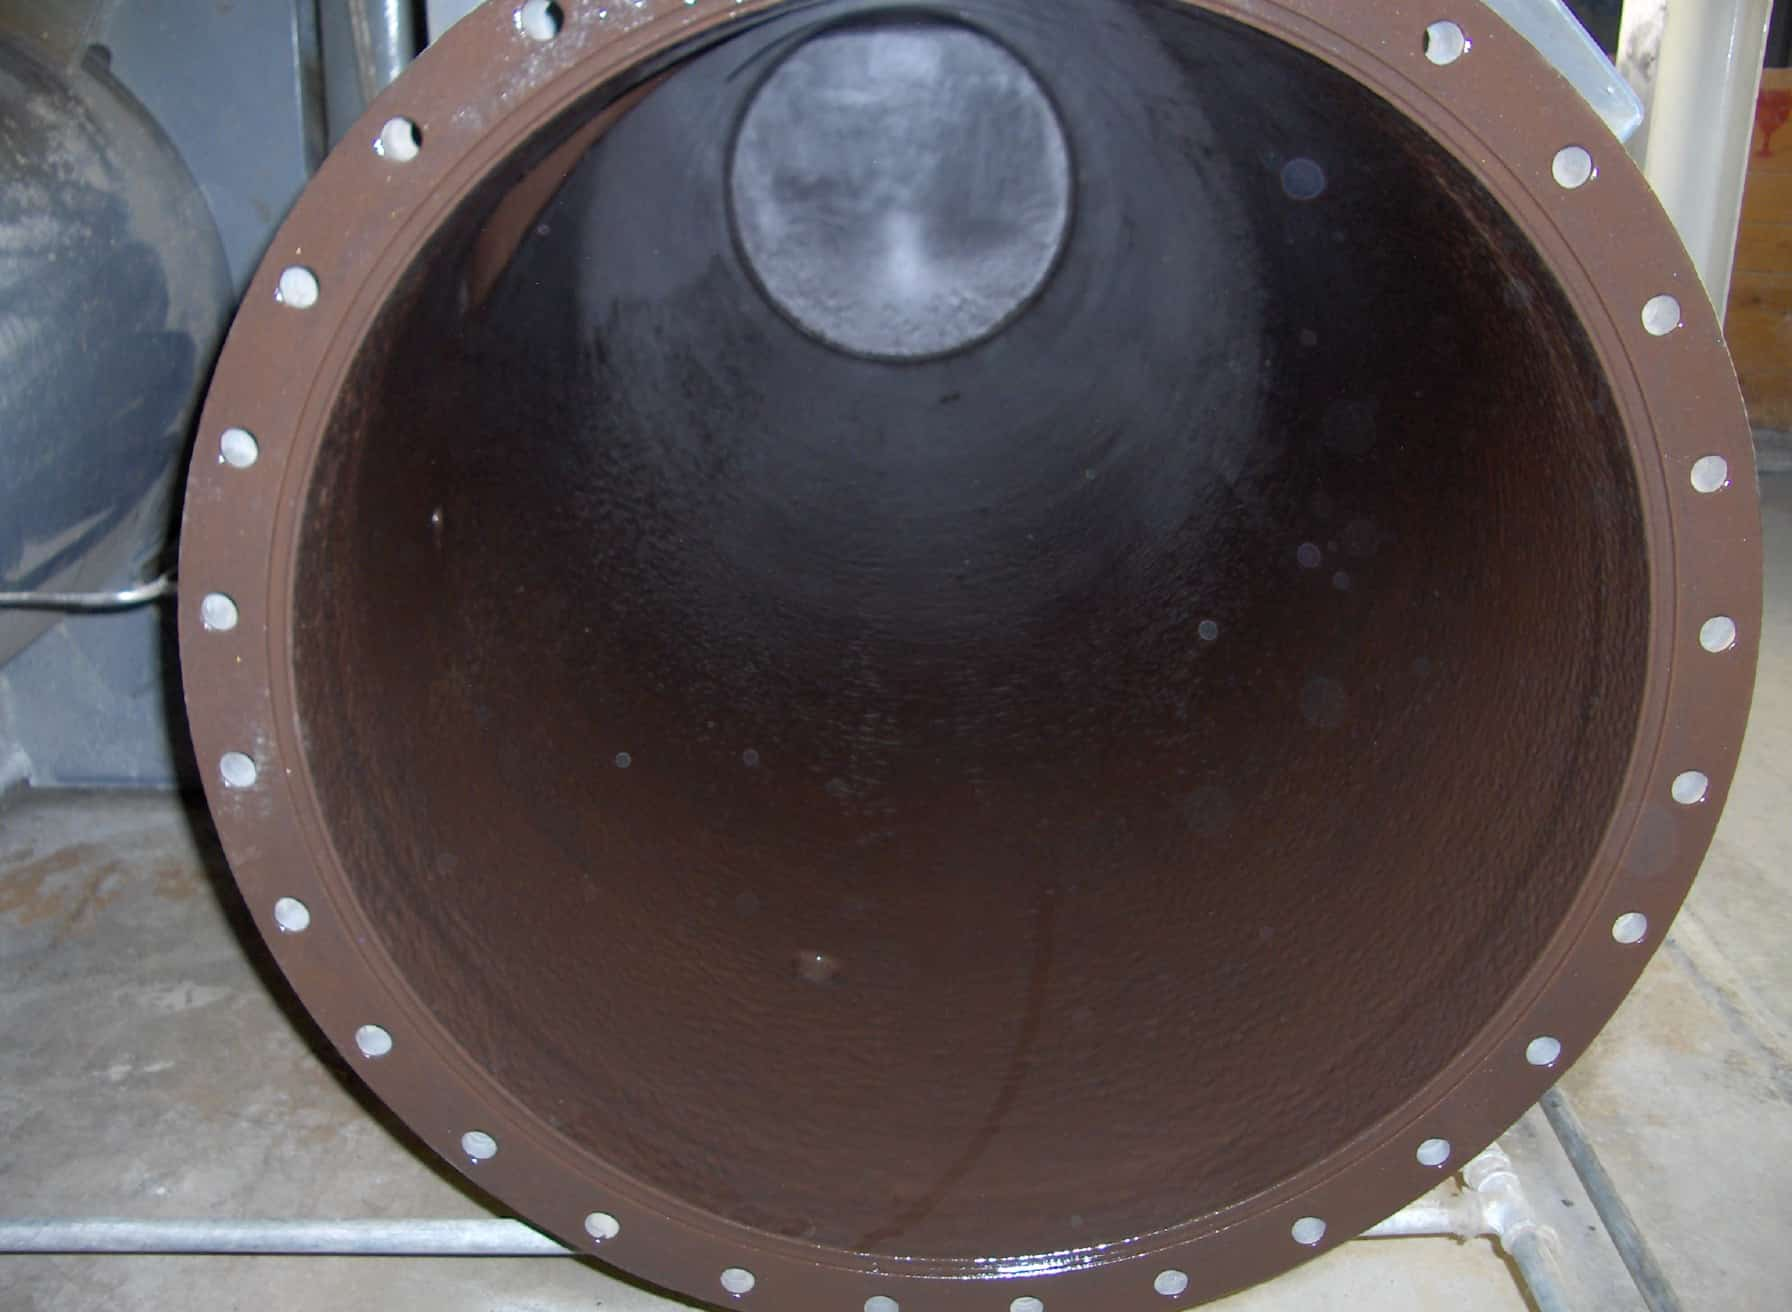 close up of circular brown pipe internal